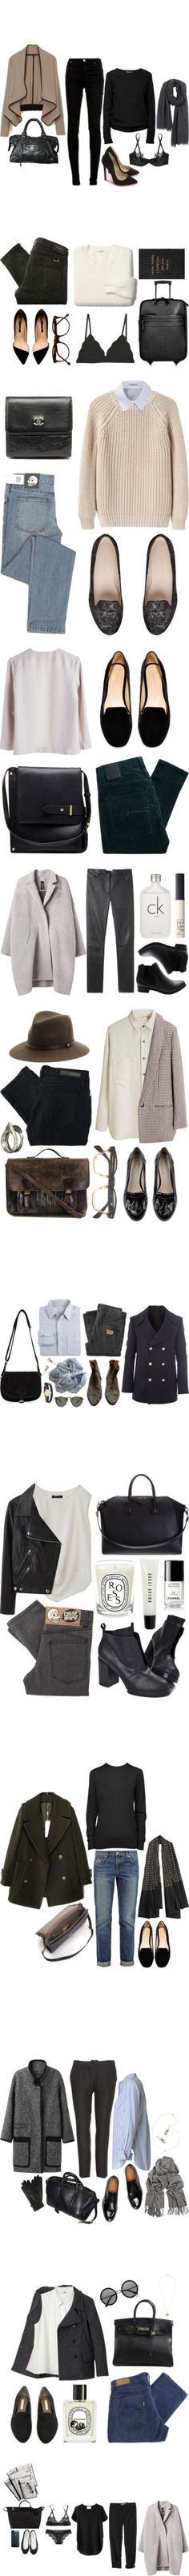 New York in October by katie-marieferguson on Polyvore featuring Christian Louboutin, dVb Victoria Beckham, T By Alexander Wang, Franco Ferrari, Kiki de Montparnasse, Balenciaga, Belstaff, Madewell, Zara and Cutler and Gross